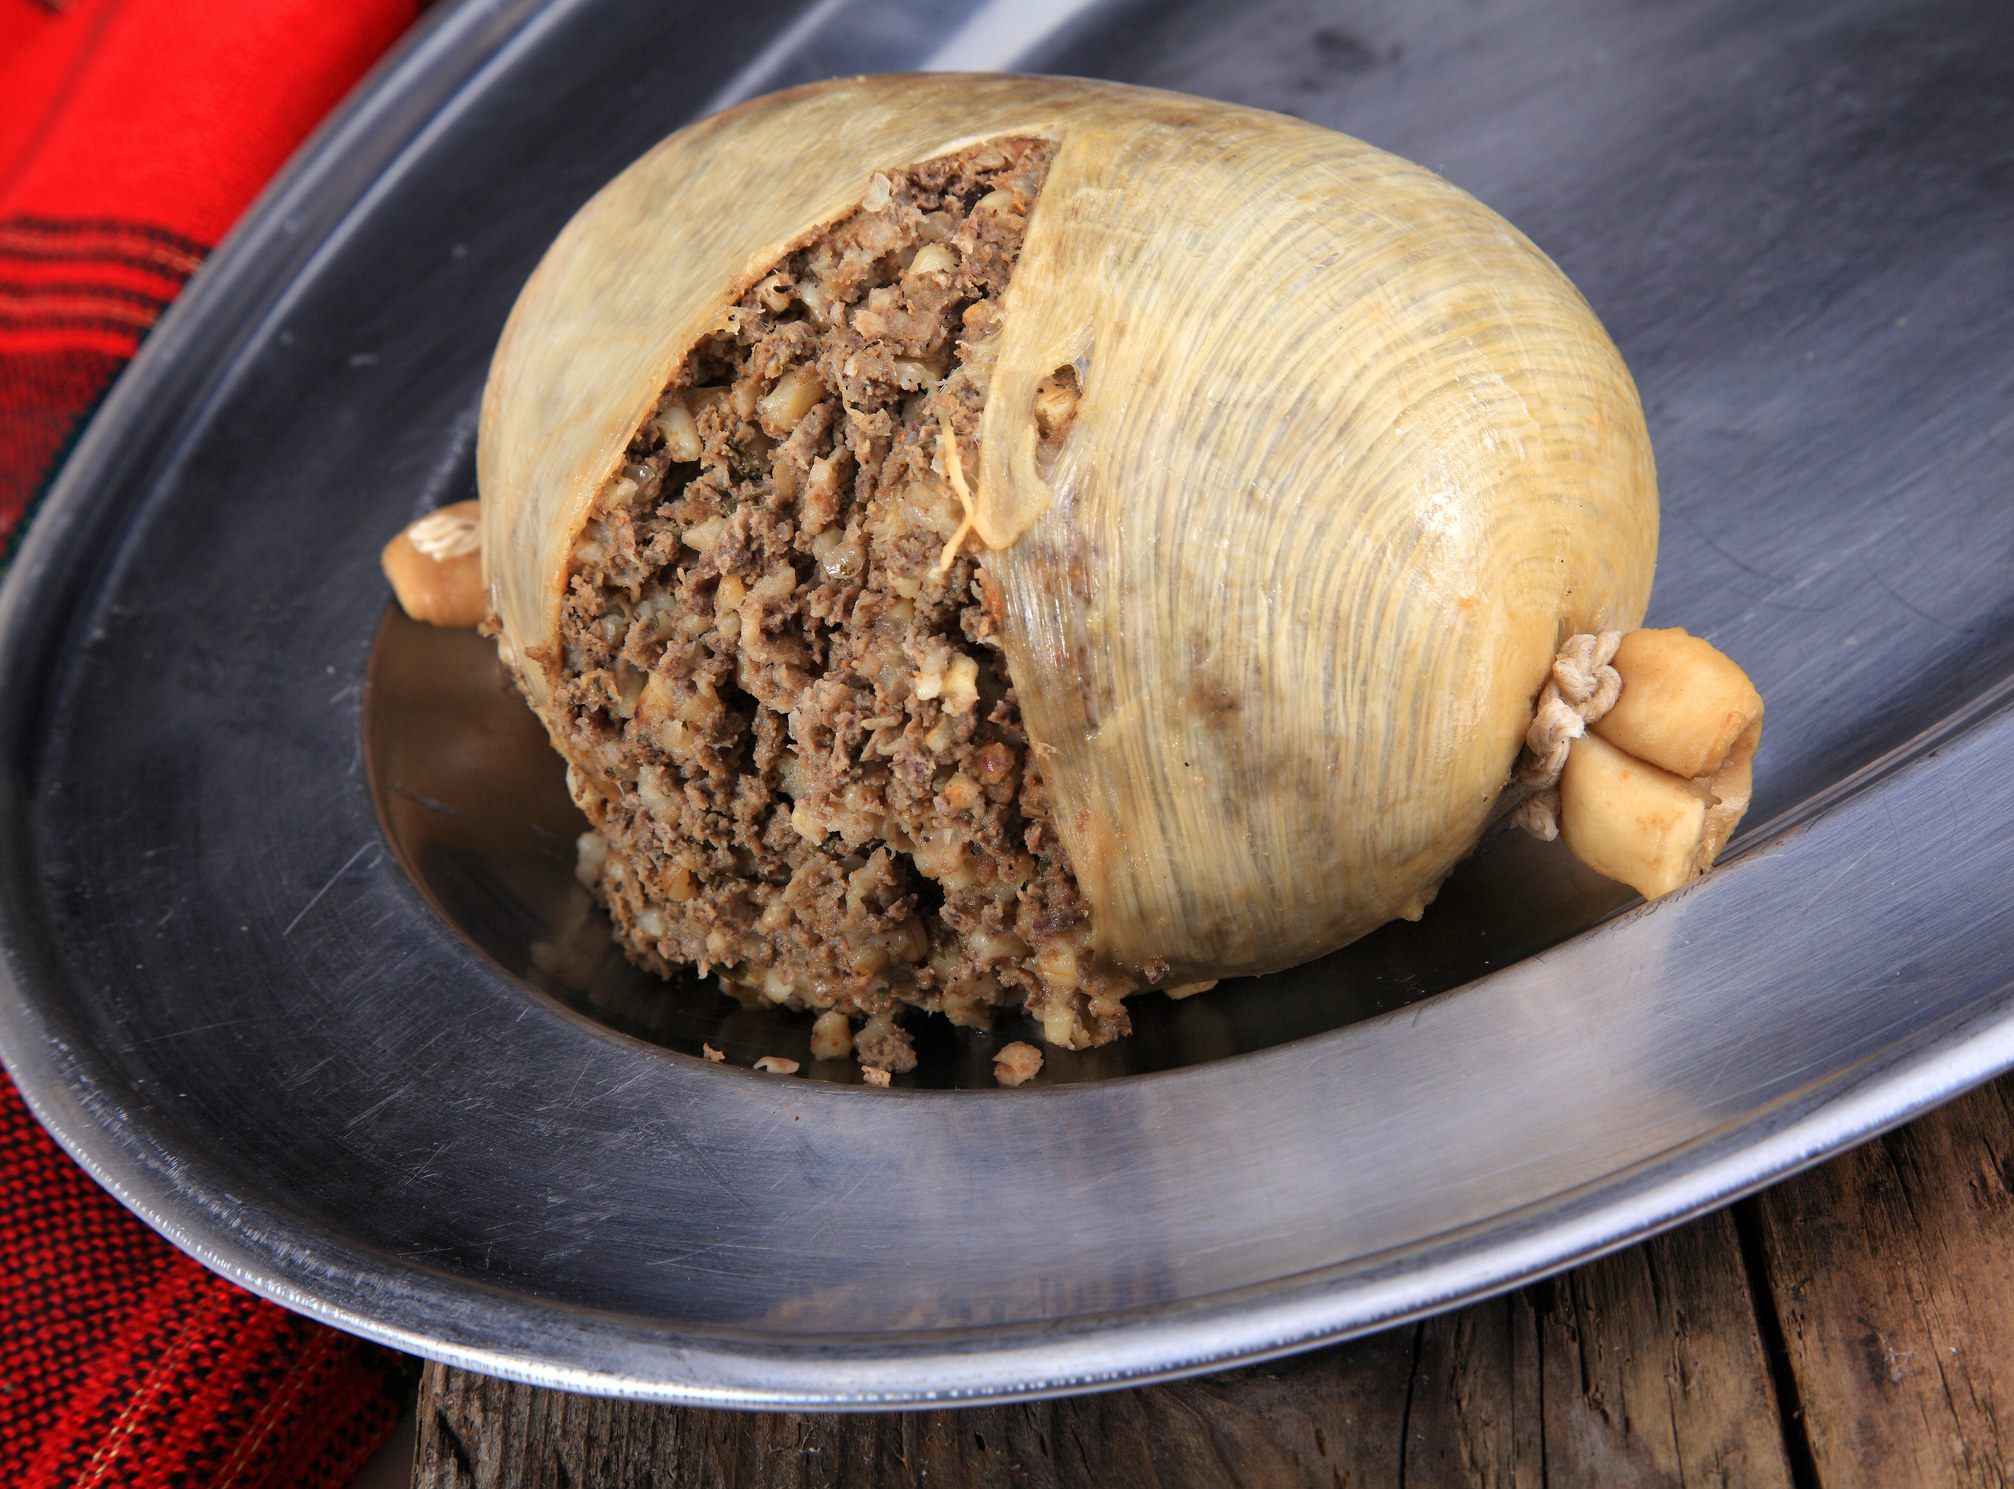 ground beef-like sausage spilling out of its casing